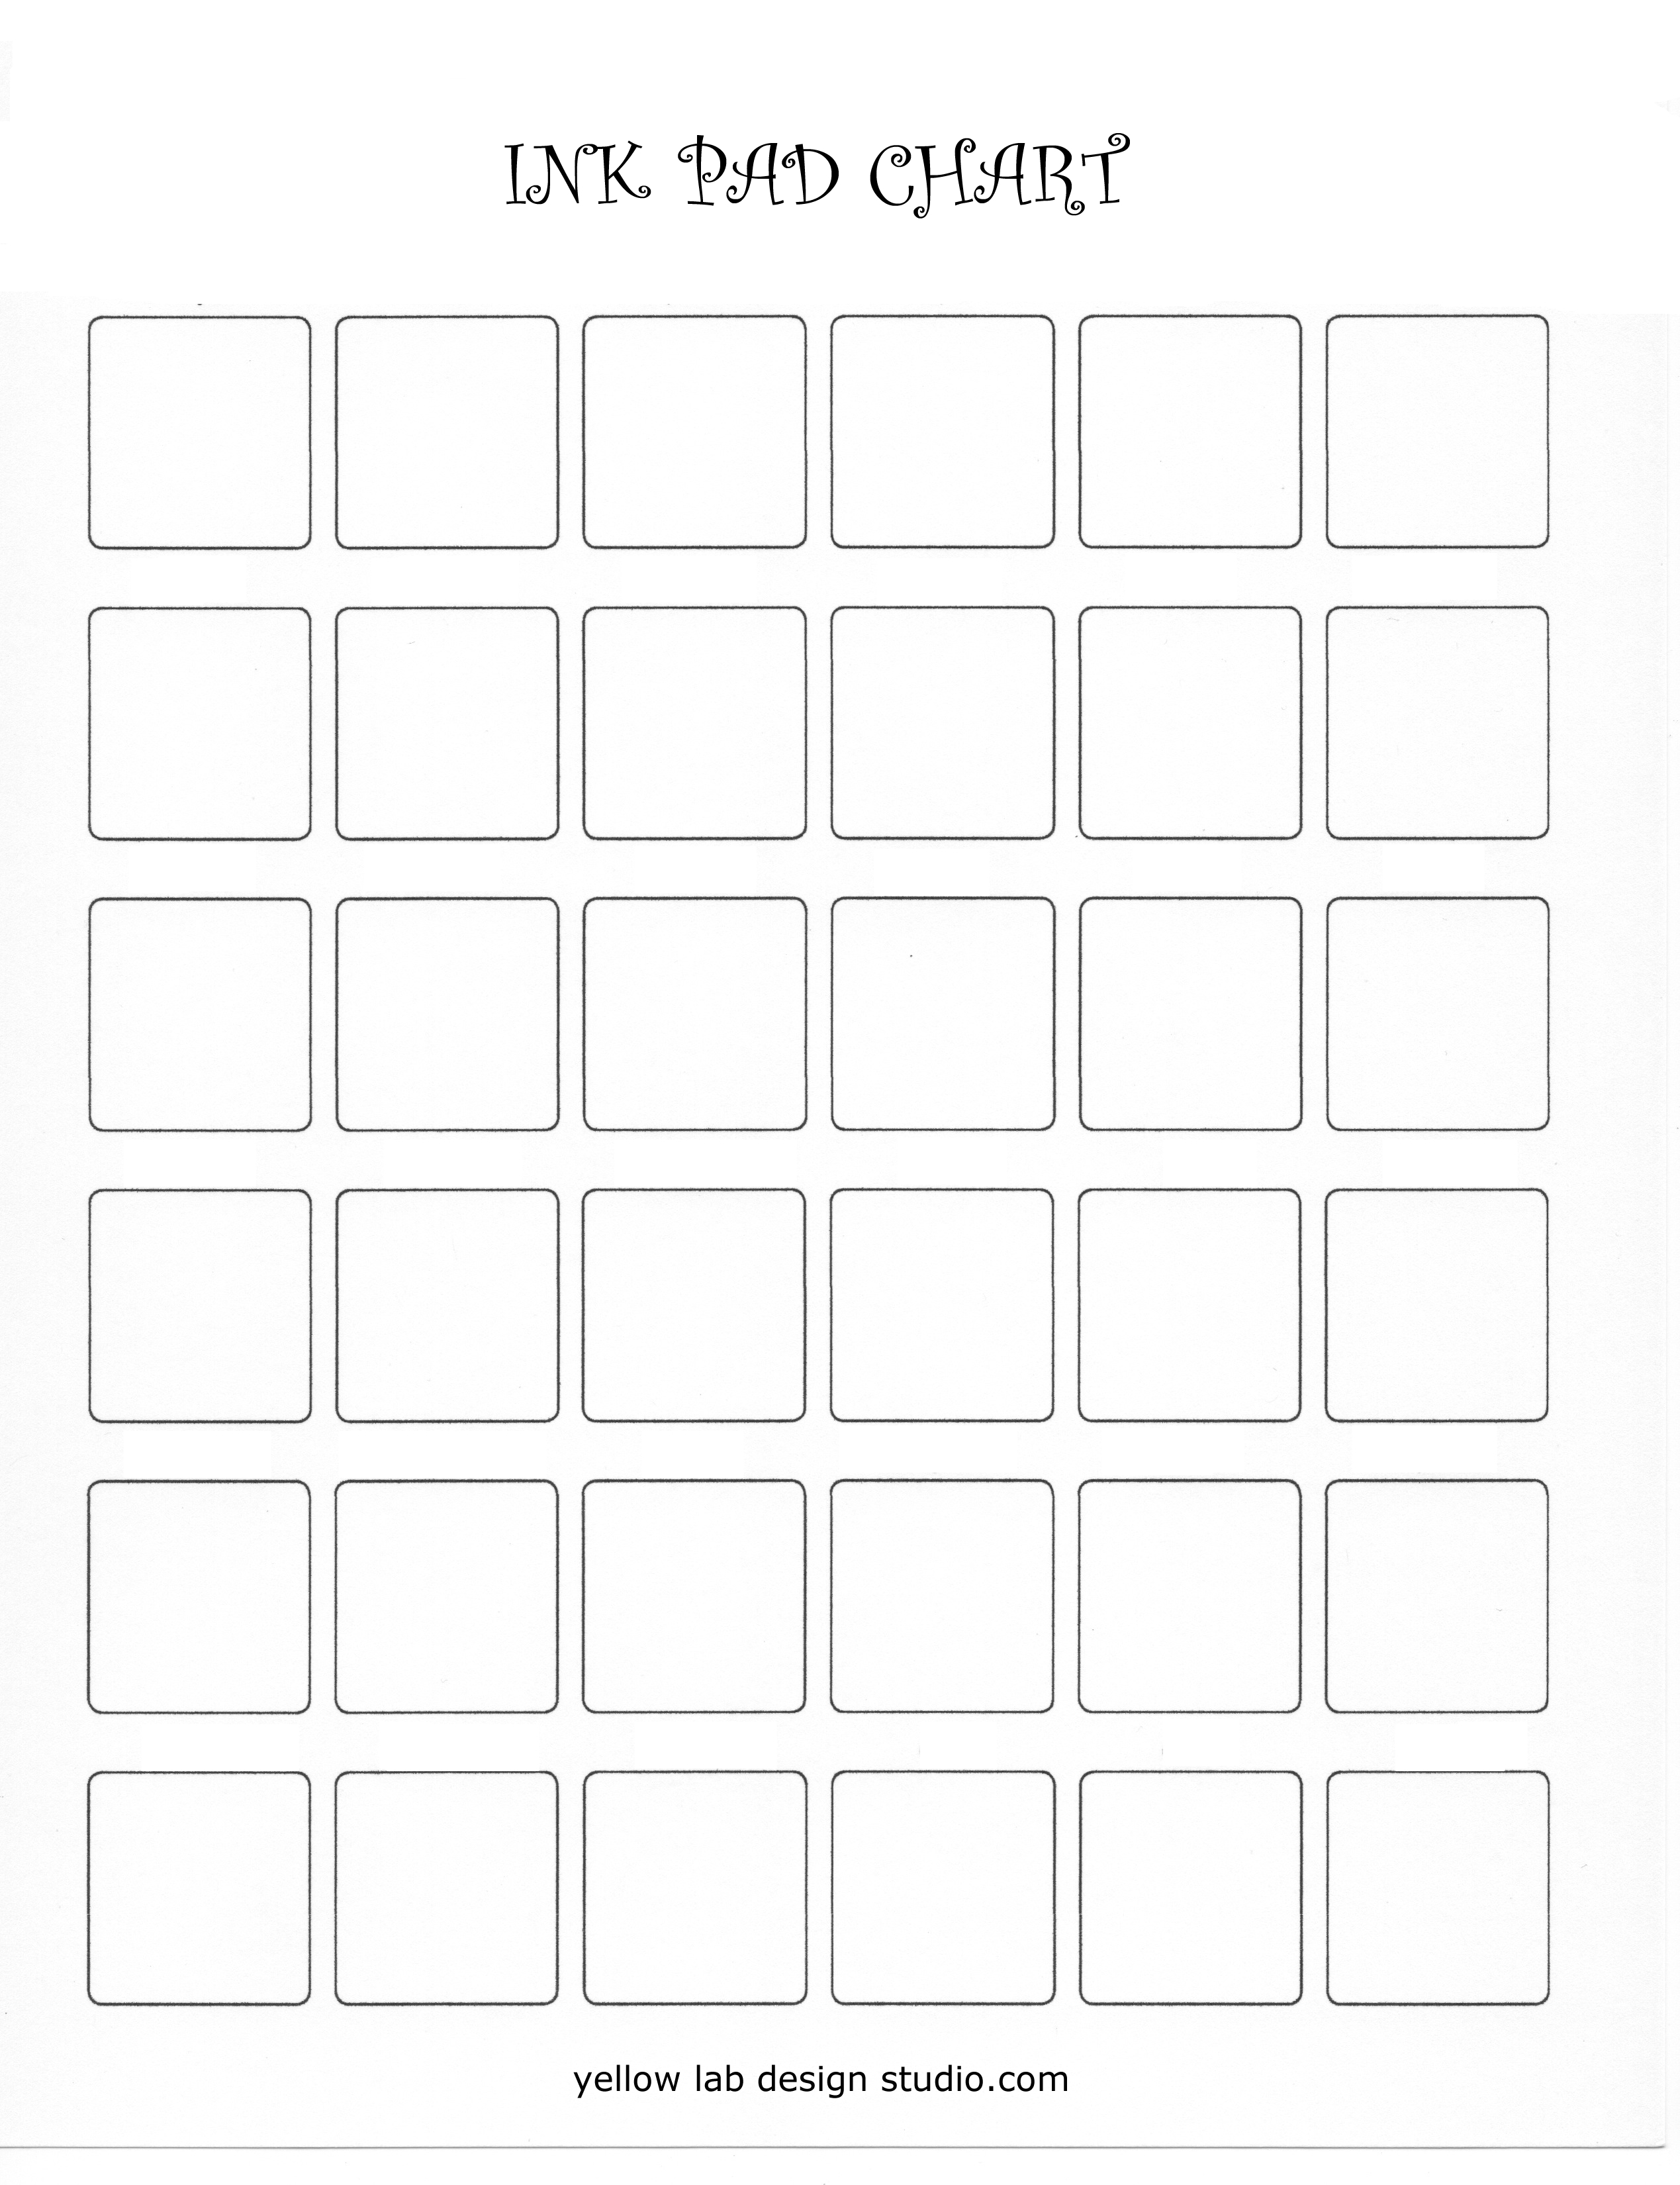 Ink Pad Colour Chart Blank